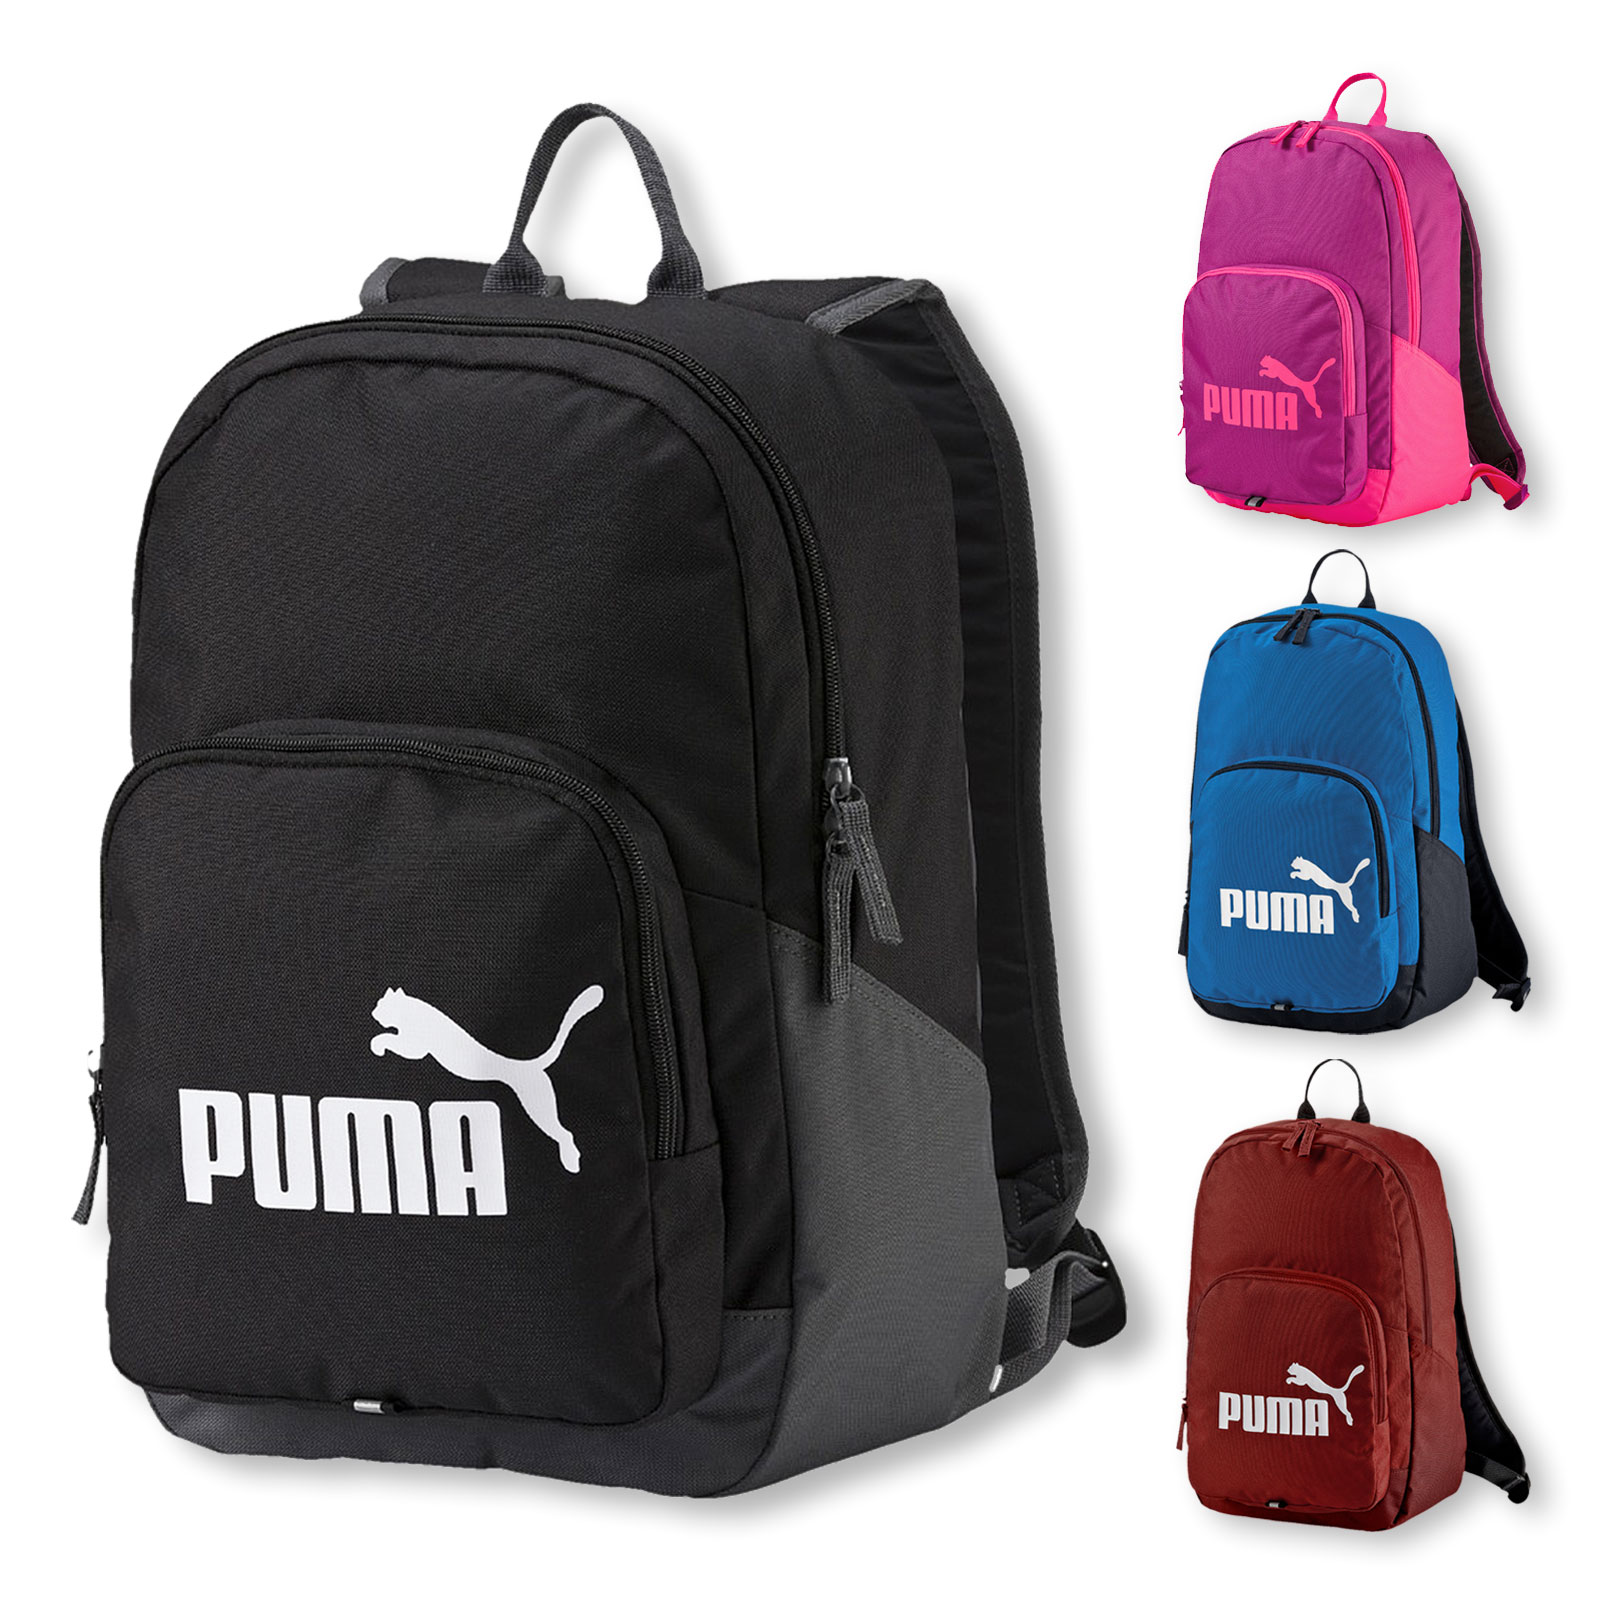 Puma Phase Backpack Rucksack 073589 in red dahlia vergrößern